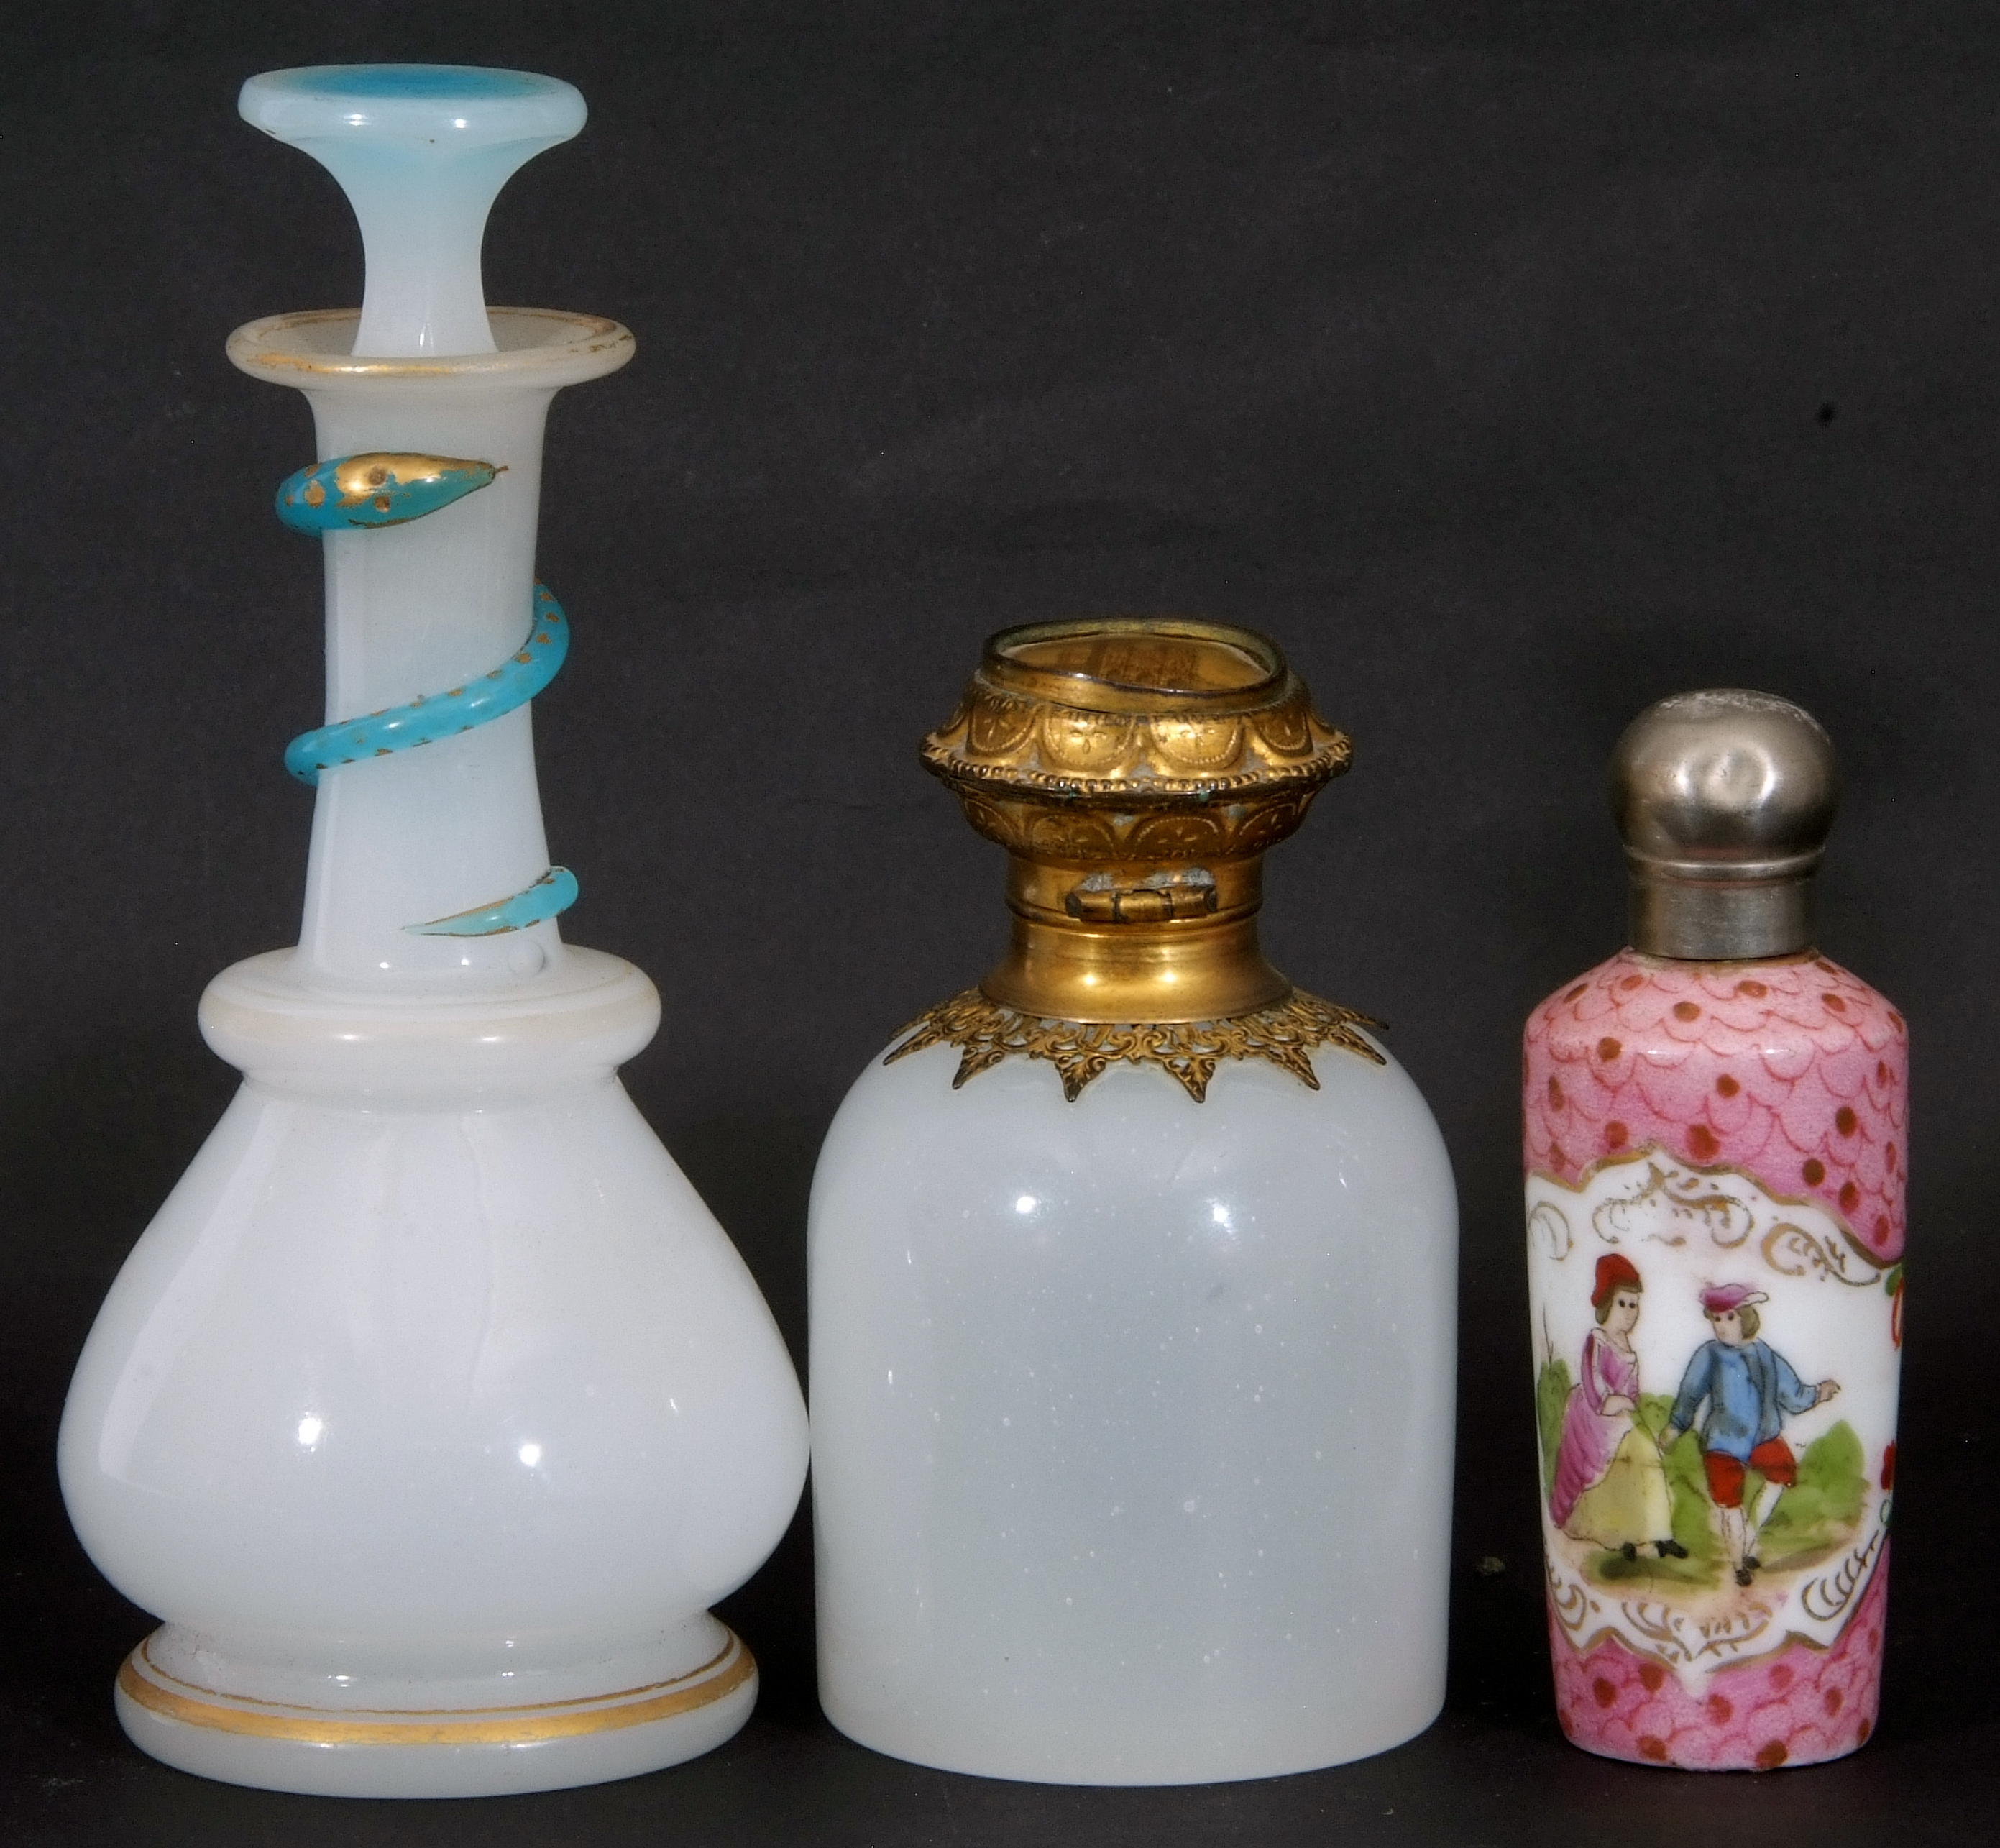 Mixed Lot: 19th century milk glass scent bottle with gilt metal hinged lid with inset to cap, a - Image 2 of 12